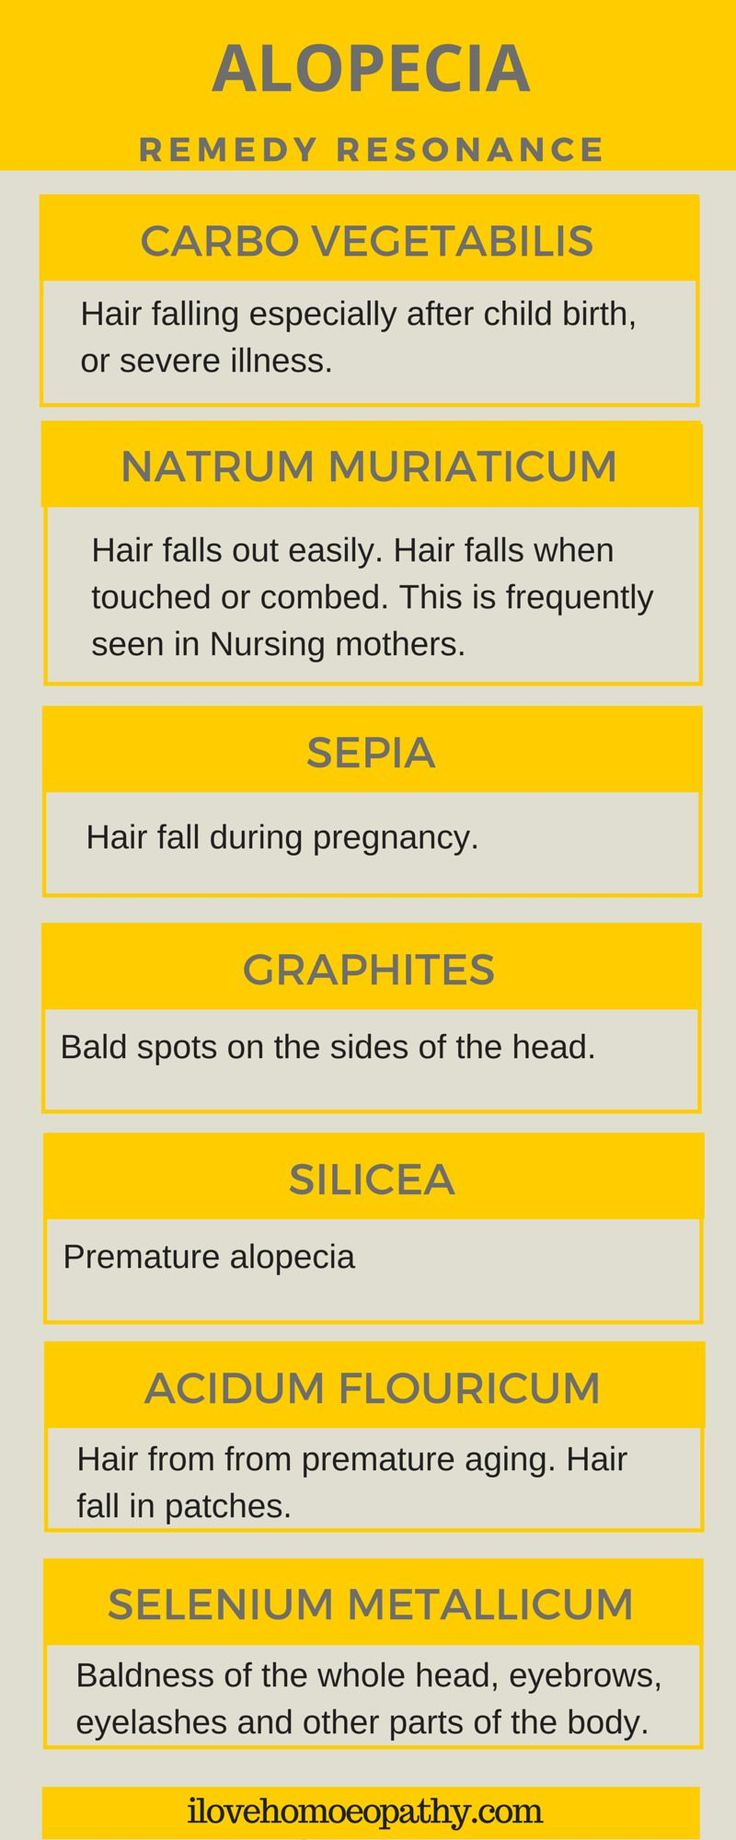 Some of the important remedies are mentioned here in the Remedy resonance for Alopecia. A homeopath will find the remedy that fits your symptoms. Do not try to self